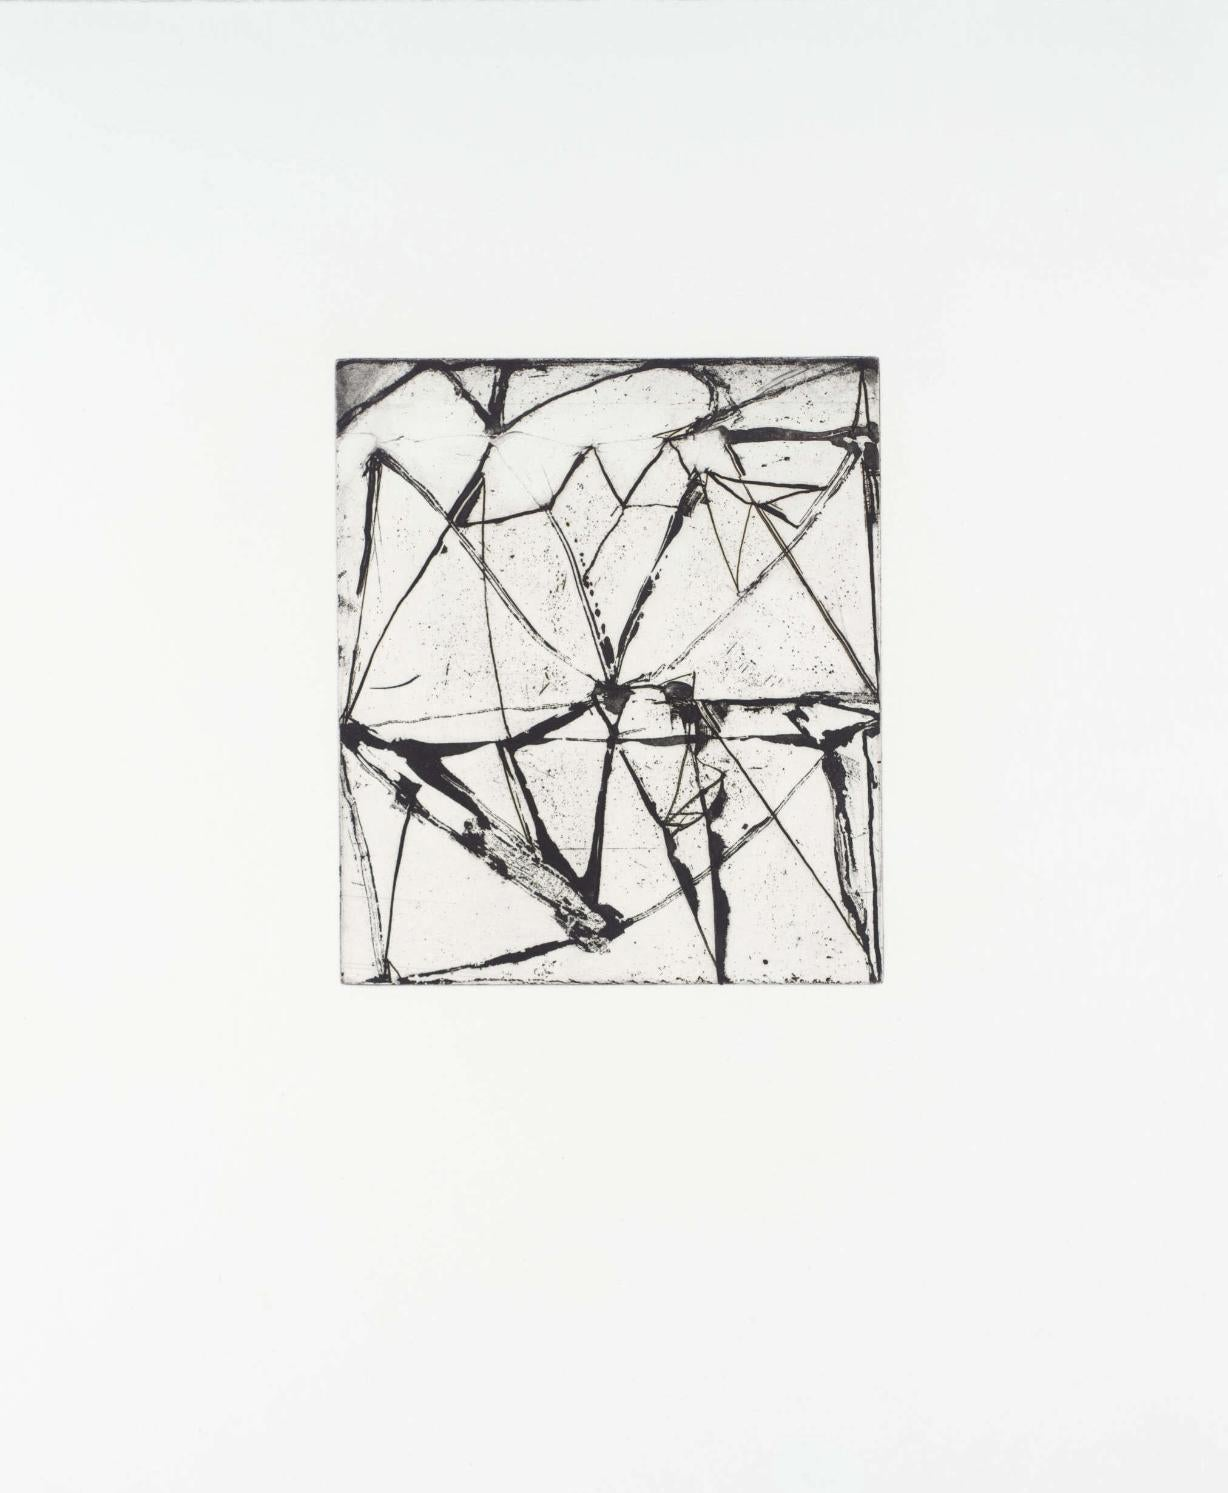 Brice Marden, Etchings to Rexroth #24, 1986, etching and sugarlift aquatint